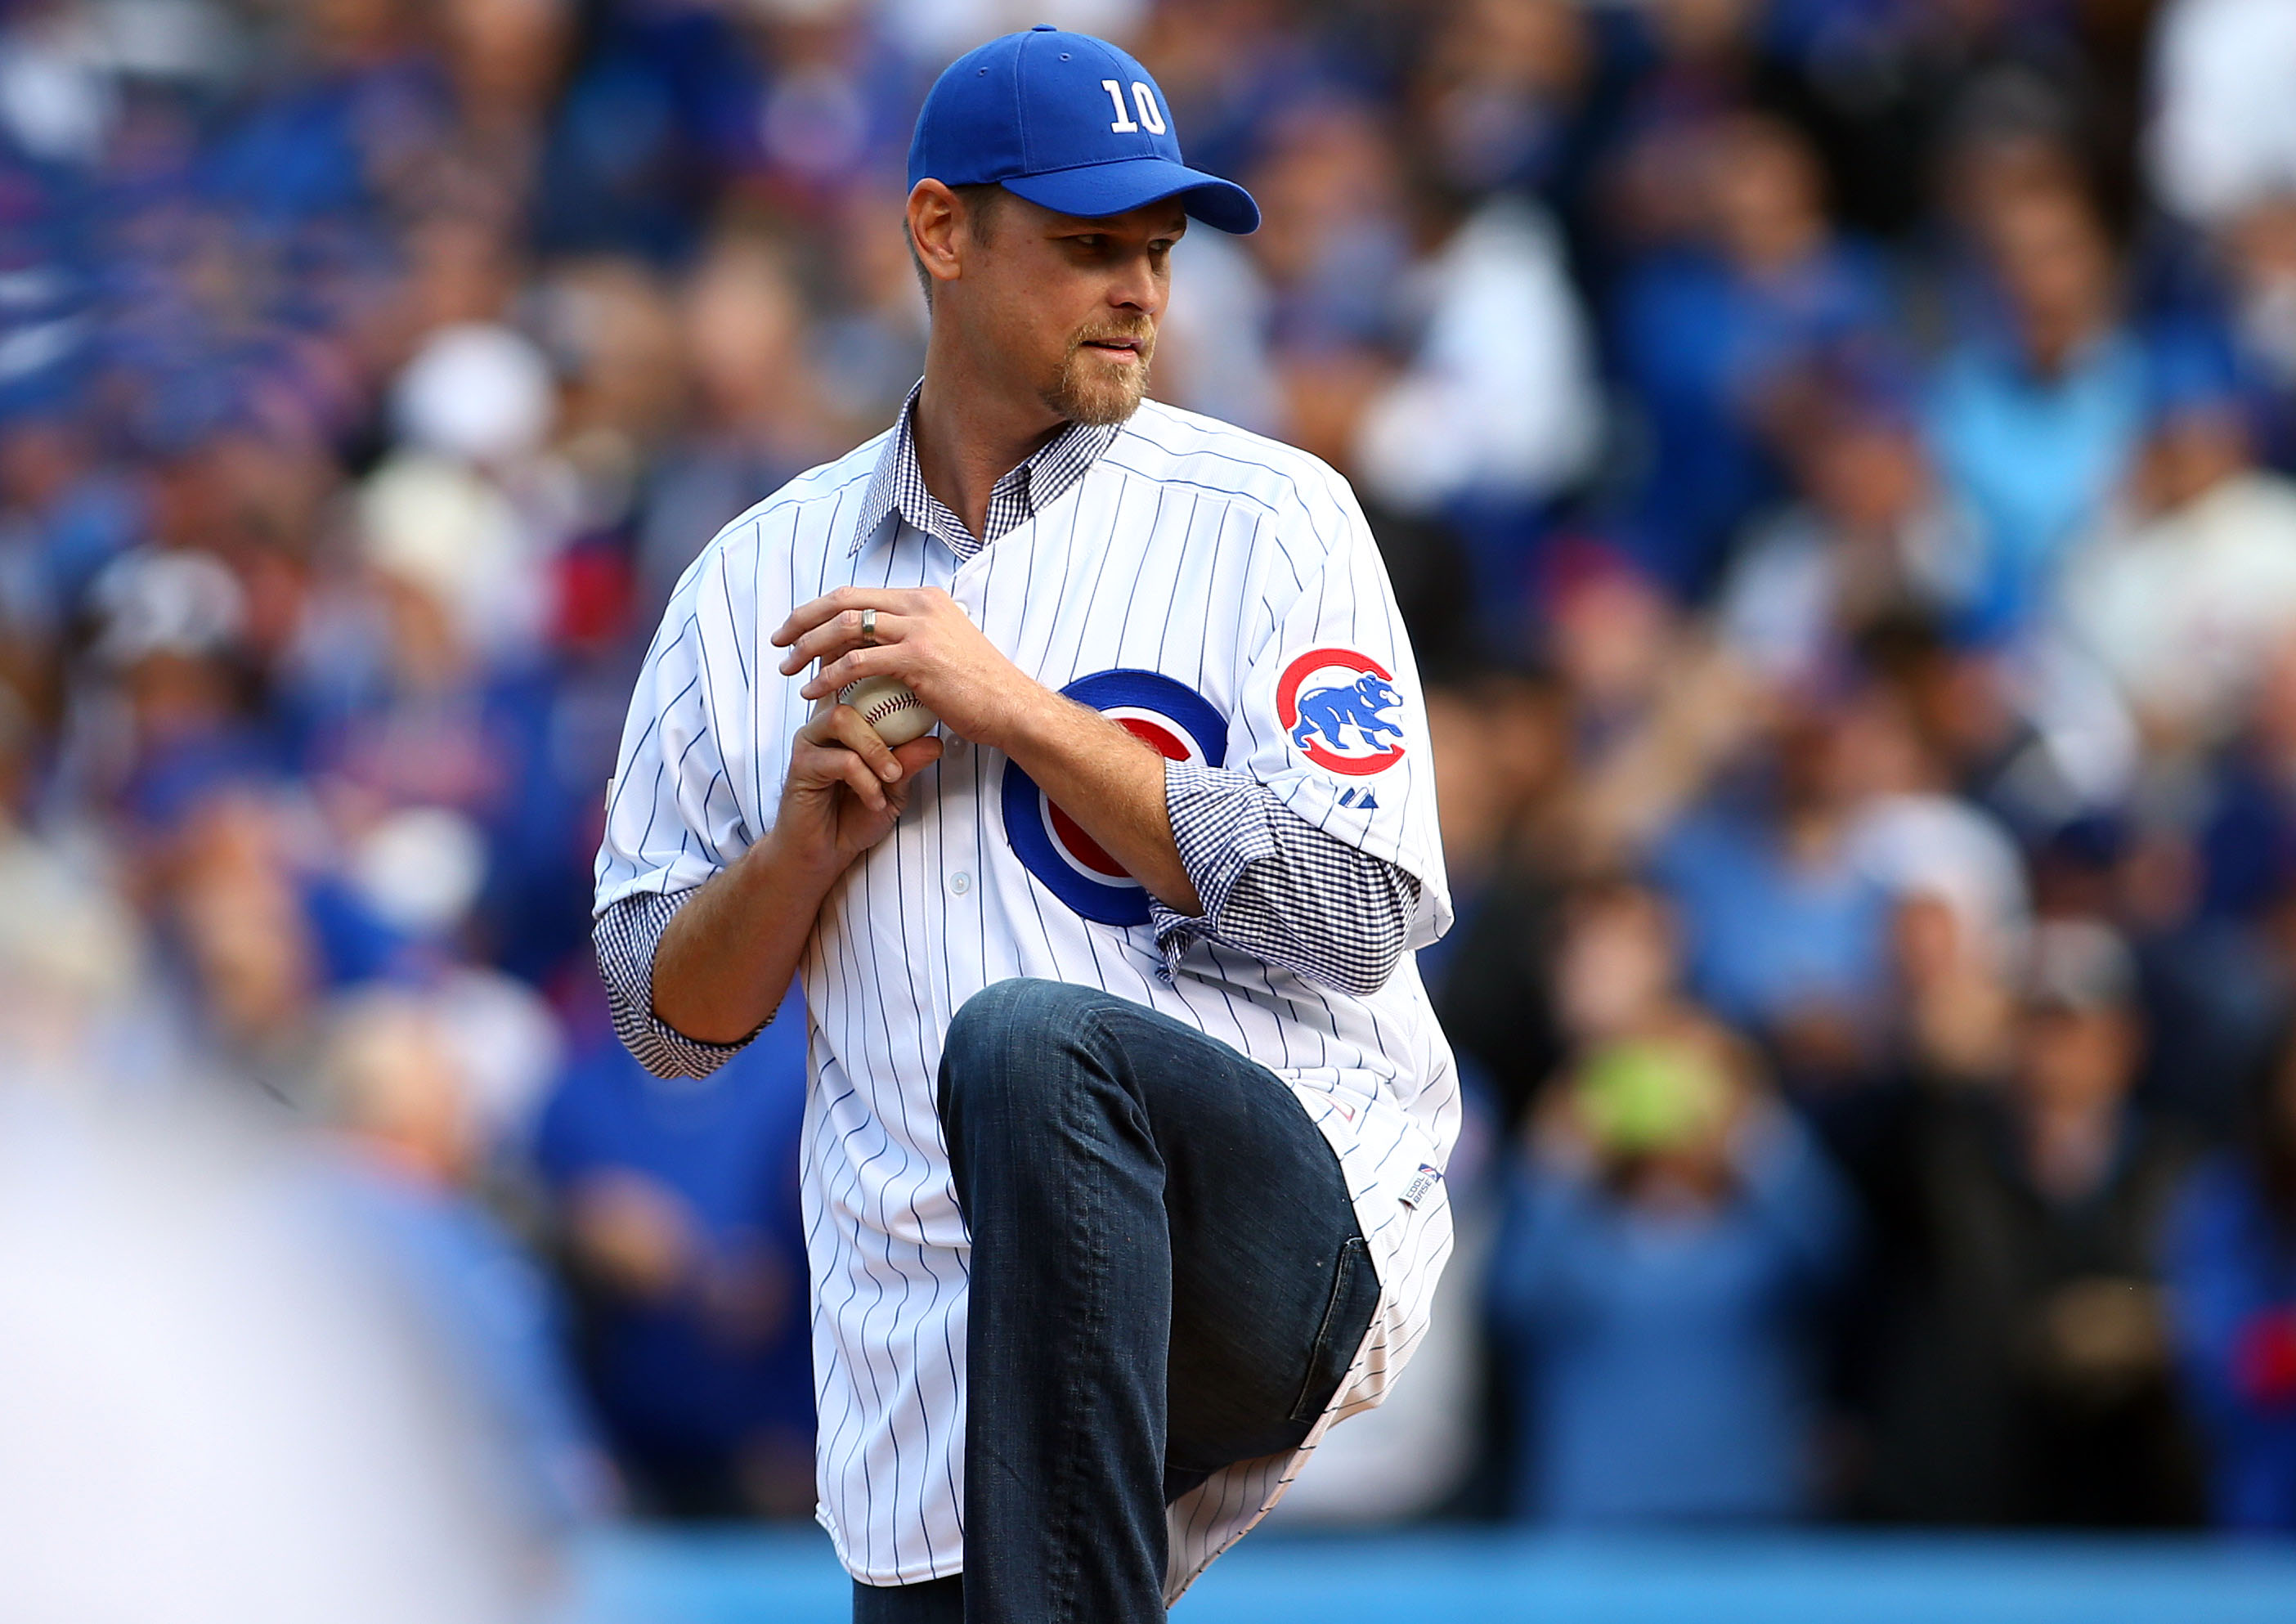 8859714-mlb-nlds-st.-louis-cardinals-at-chicago-cubs